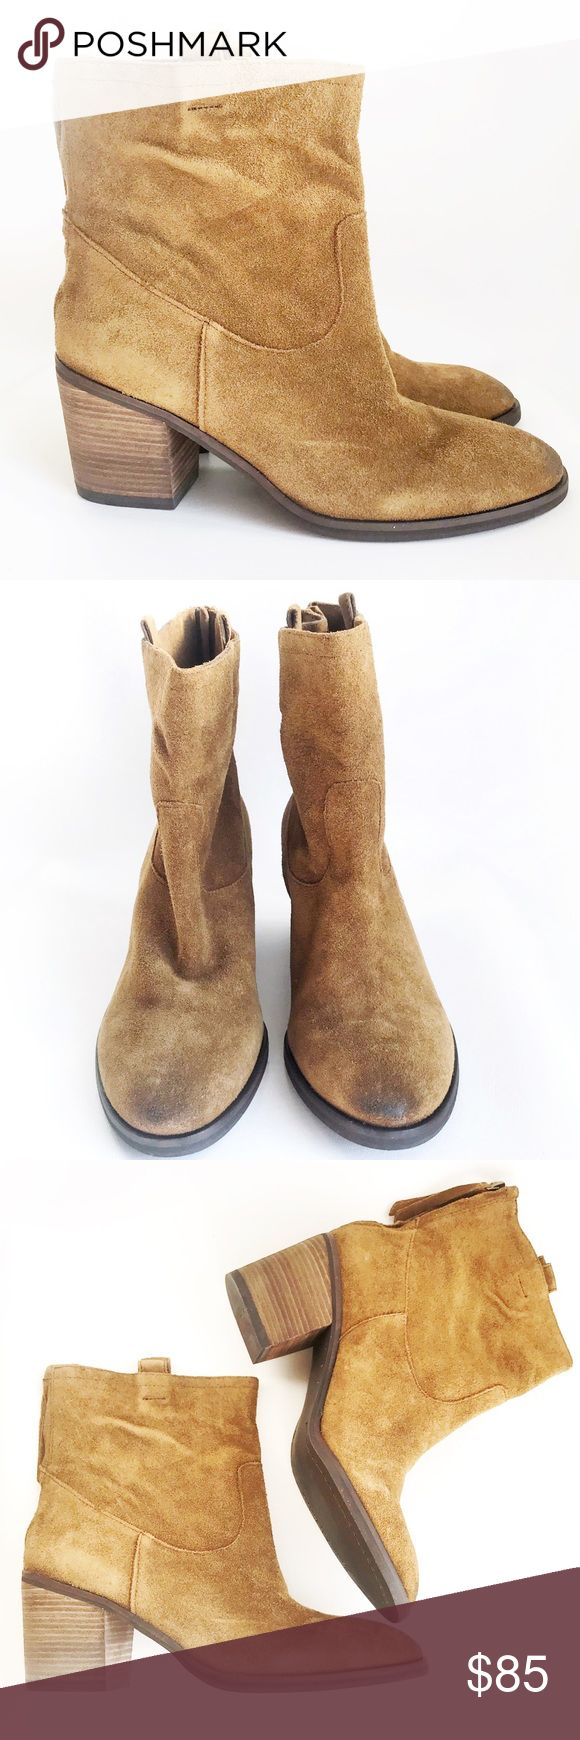 """NWOT SAM EDELMAN Tan Farrell Suede Boots Size 9.5 DESCRIPTIONS: """"Farrell"""" Tan Suede Bootie, Size 9.5 - Distressed Suede - Tassel pull back zippers - Pull tabs at top of boots.    - 2 3/4"""" Chunky stacked heel.  - Suede upper/Fabric lining/Synthetic rubber sole.   CONDITIONS: Great condition. NWOT. Sam Edelman Shoes Ankle Boots & Booties"""